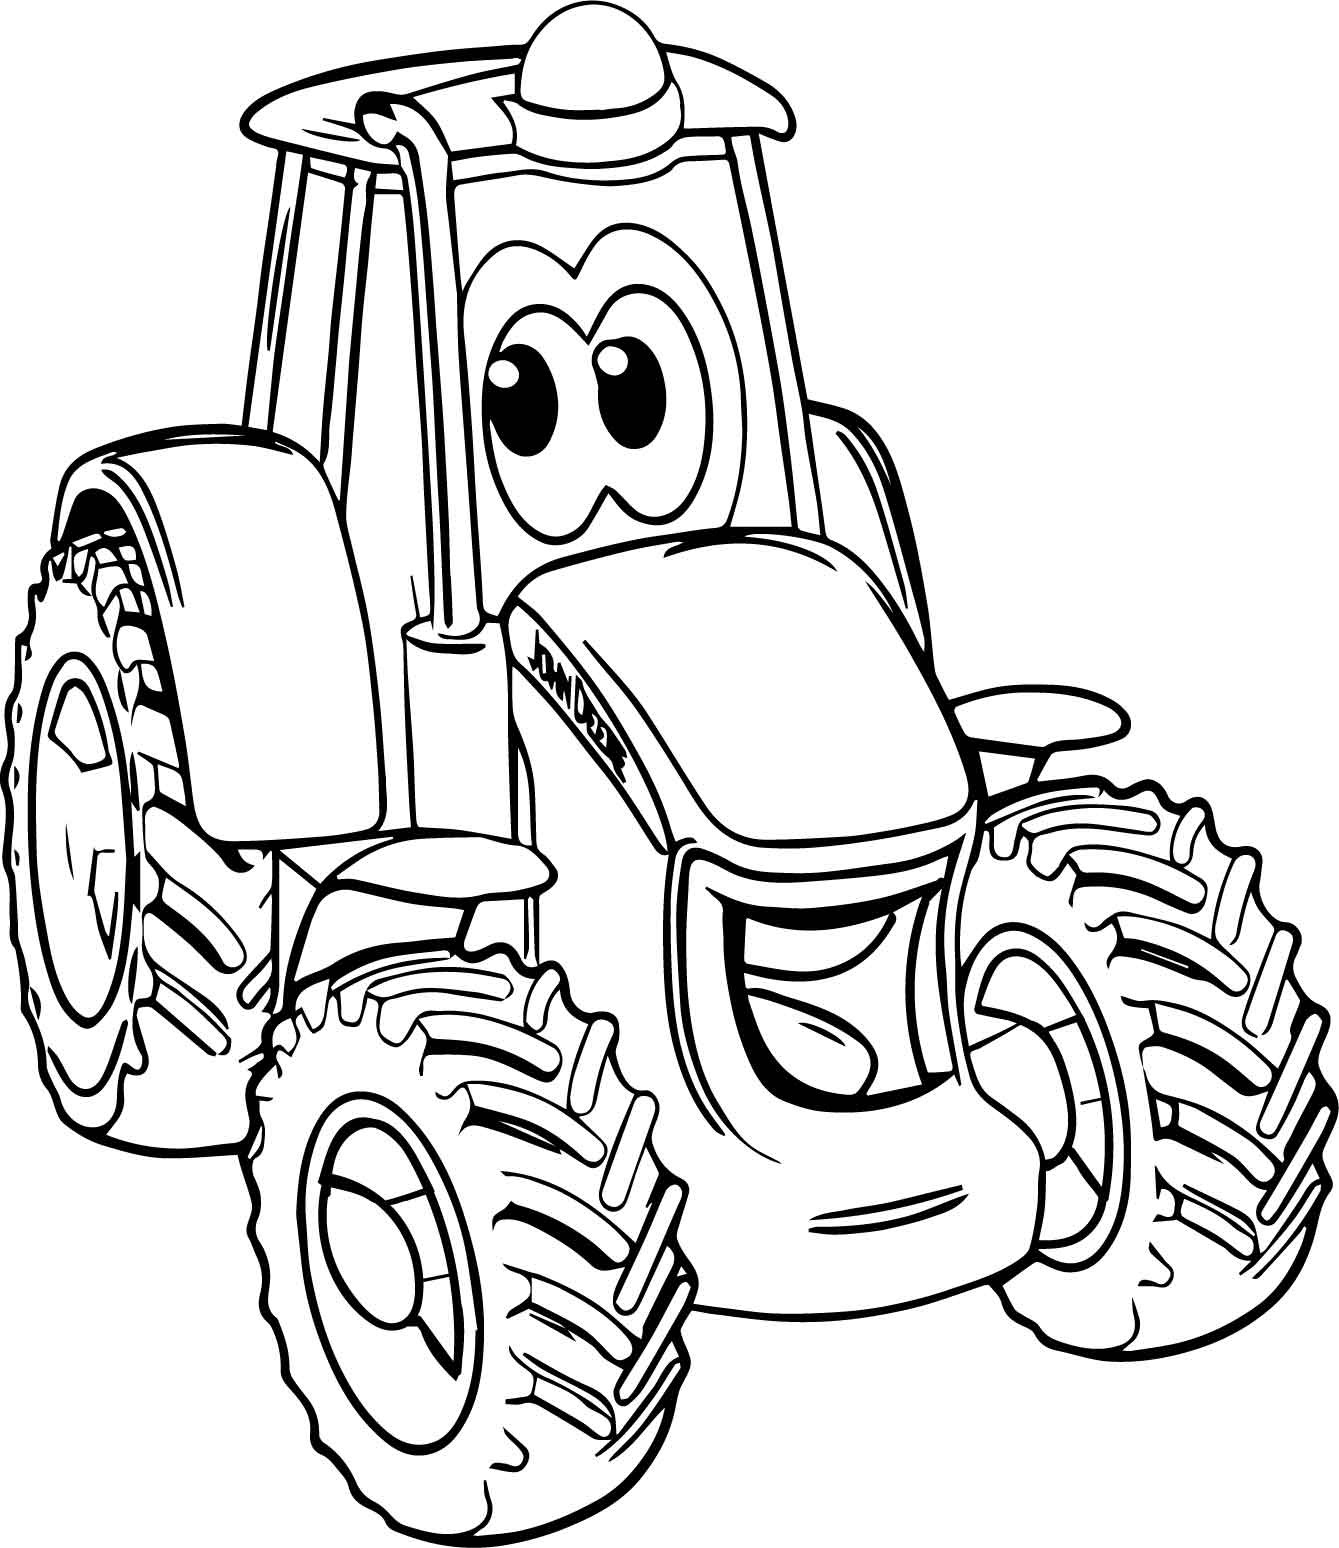 tractor color pages rugged tractor coloring pages yescoloring free tractor color pages